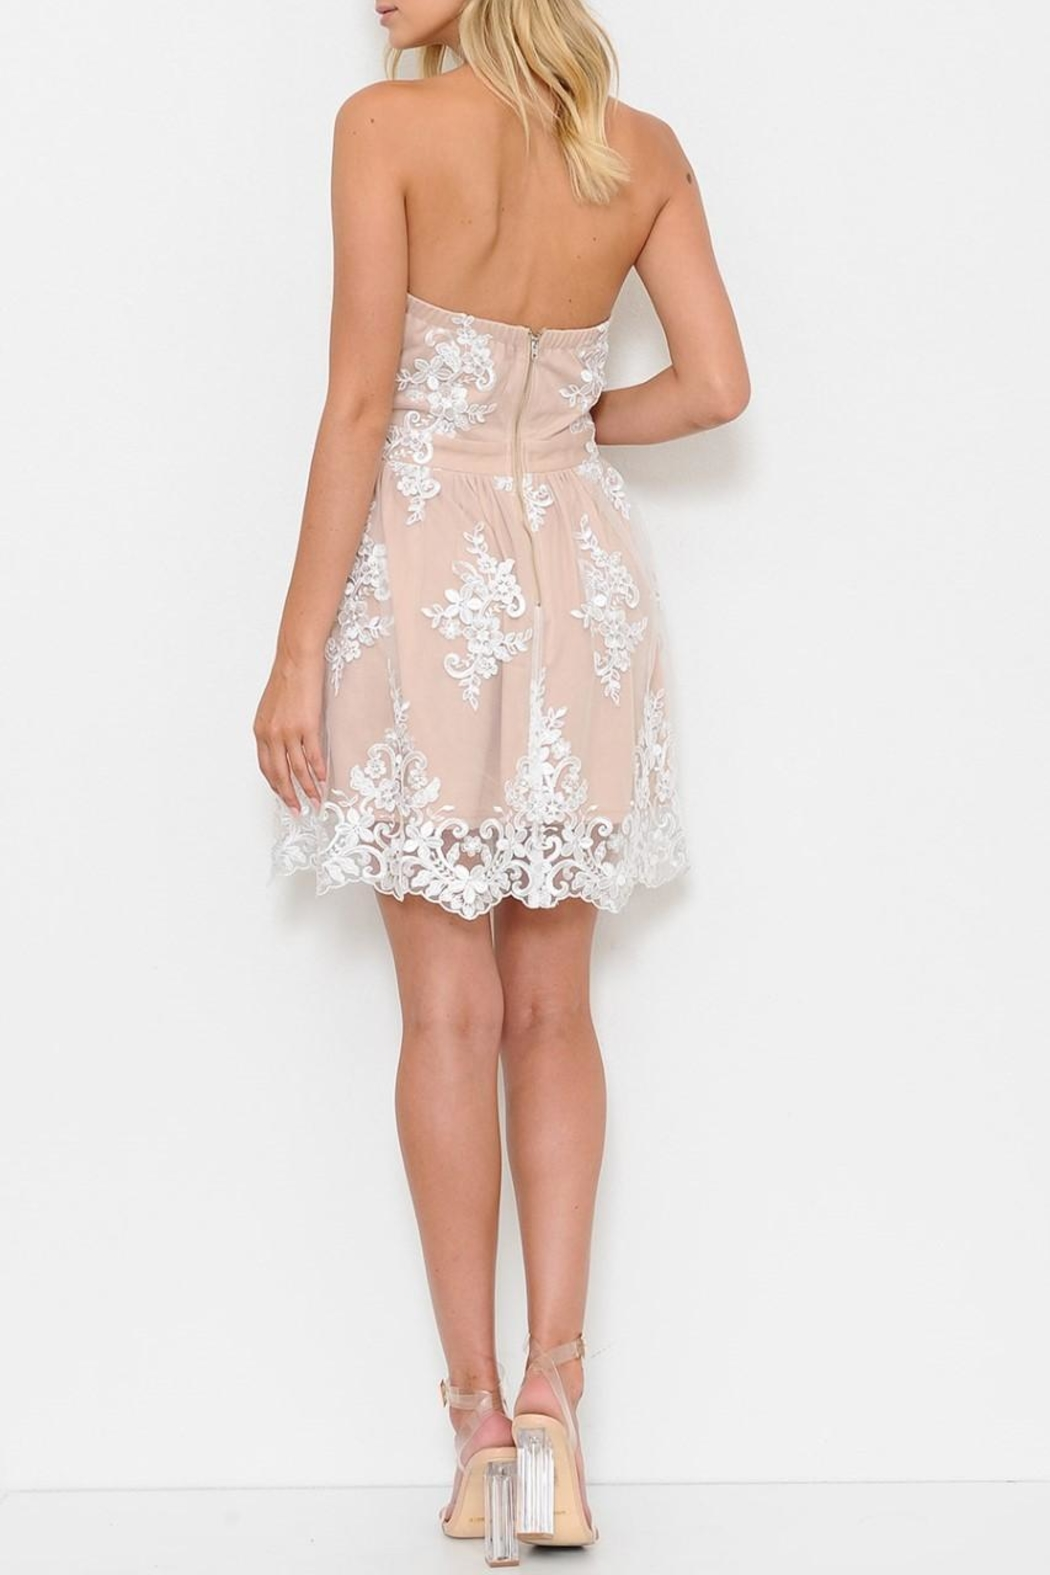 L'atiste White Lace Dress - Side Cropped Image